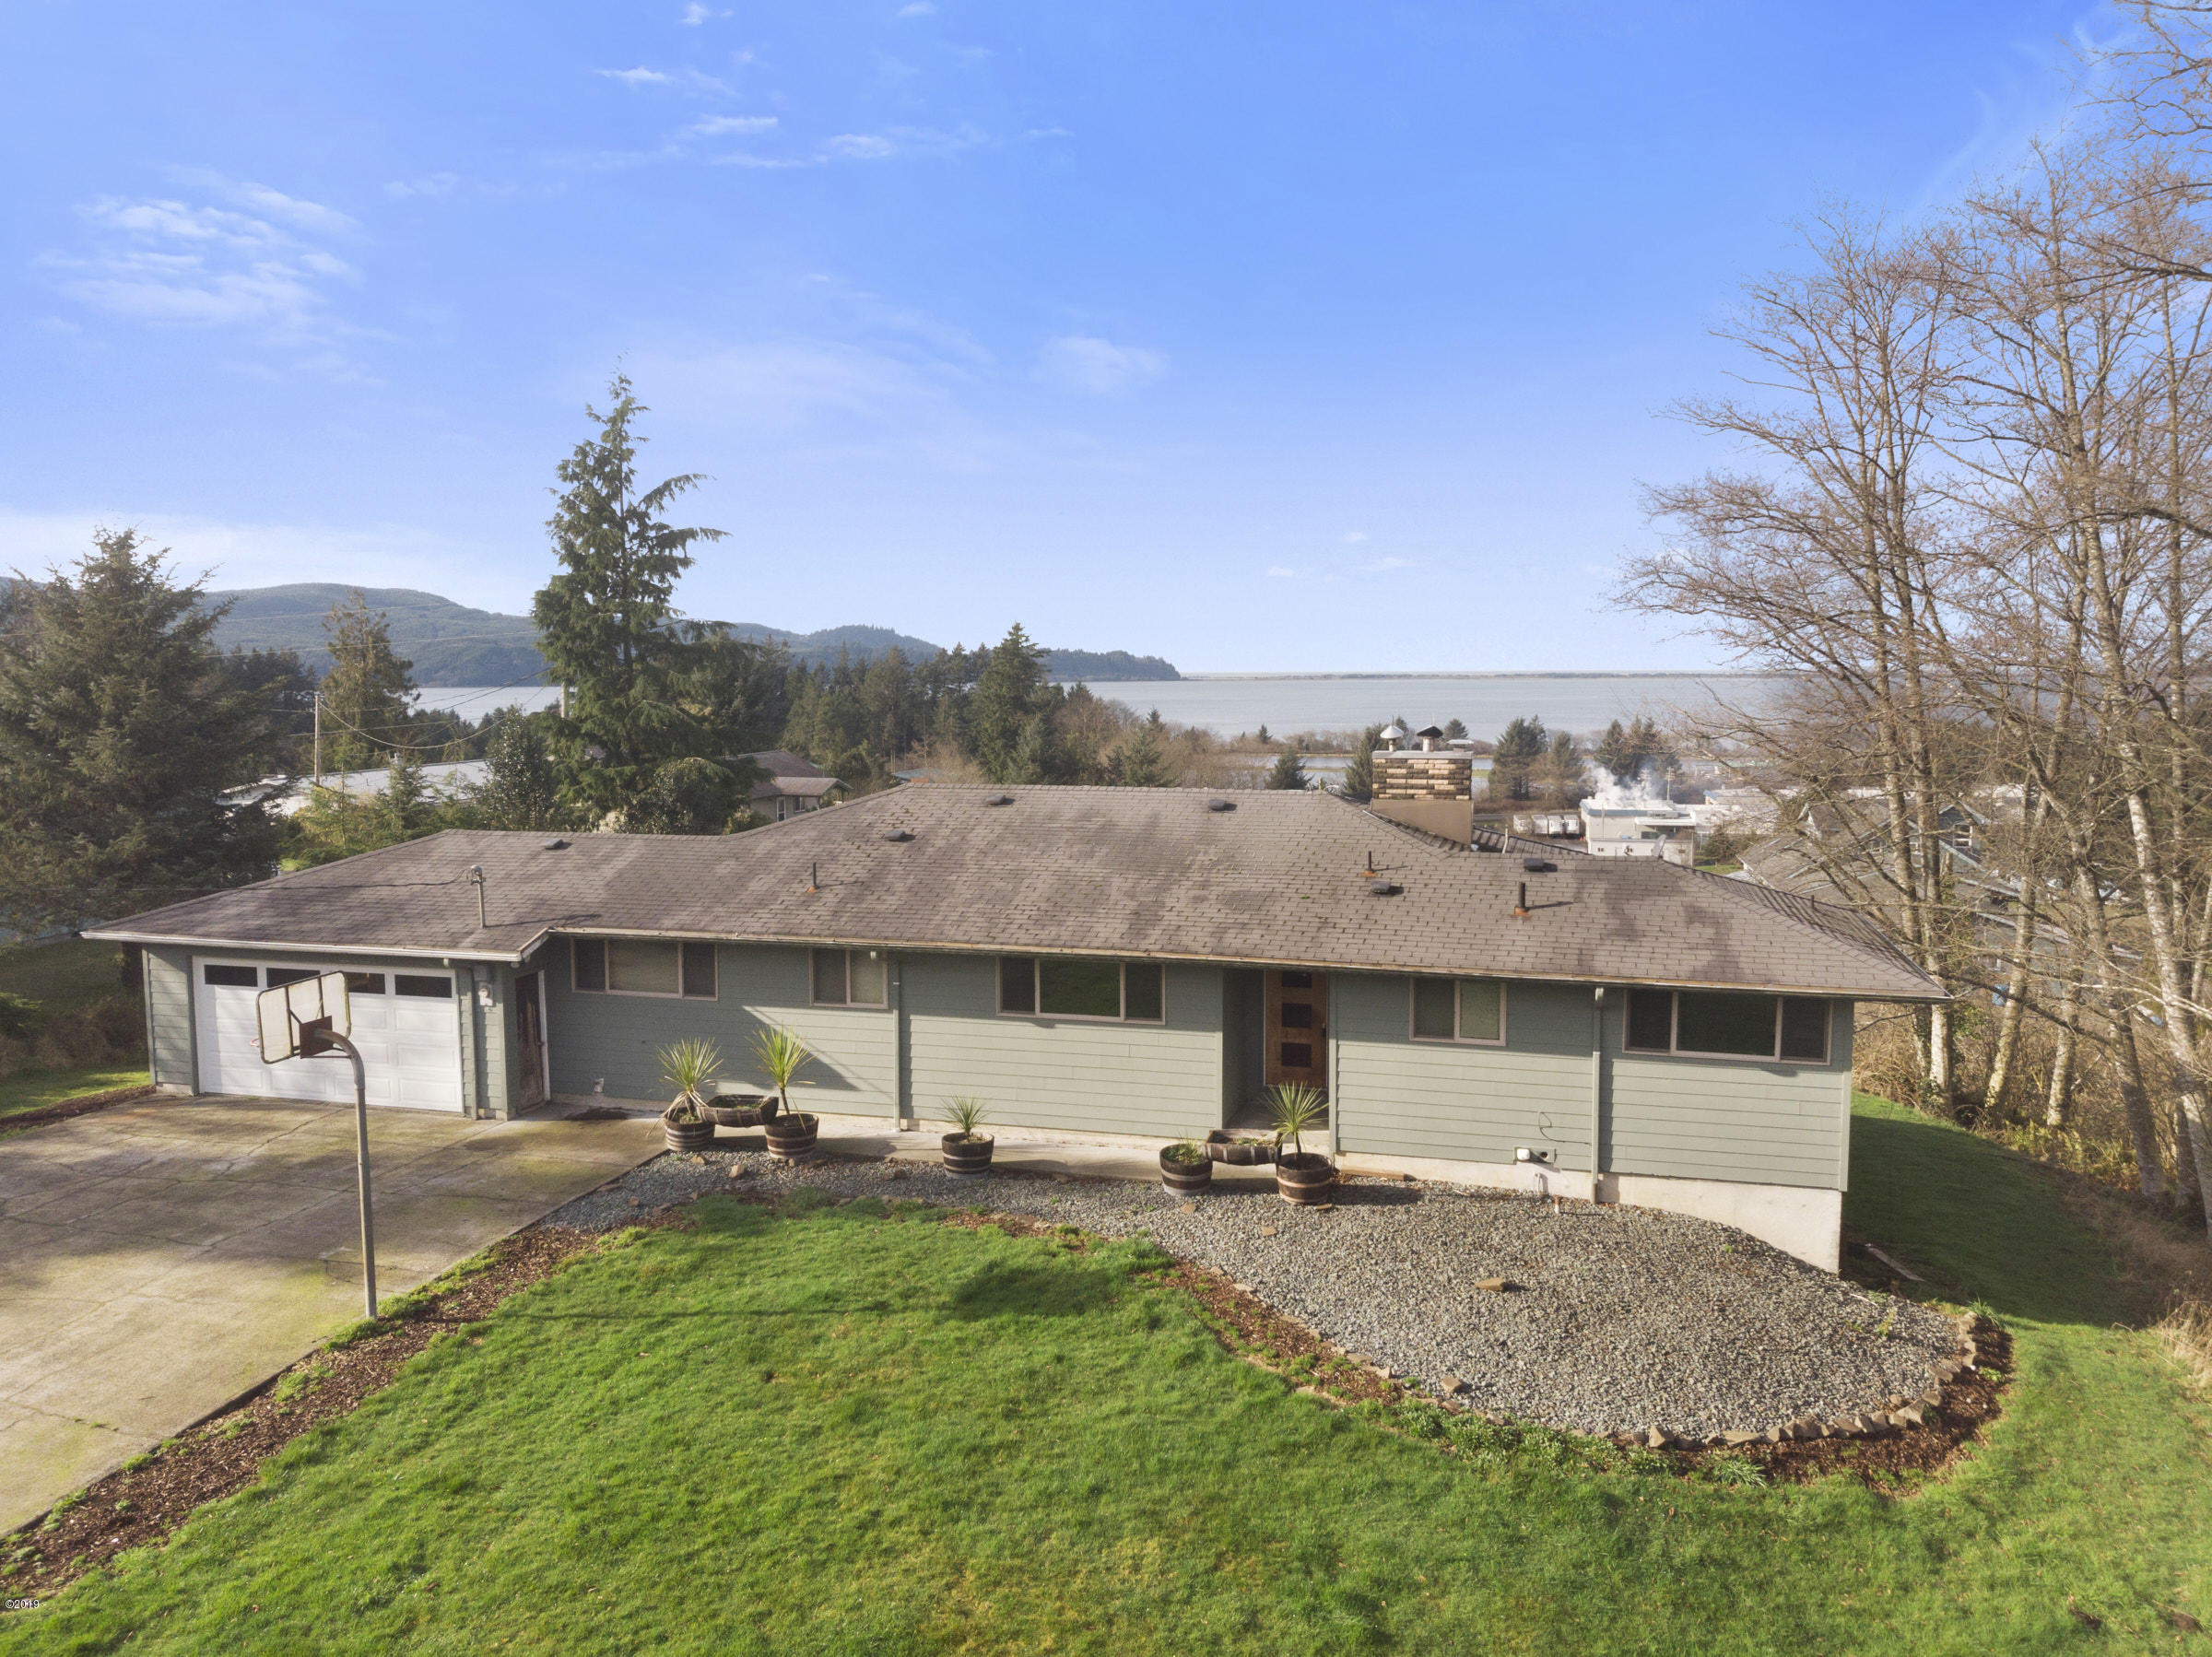 8115 16th St, Bay City, OR 97107 - dji_0592-dji_0594